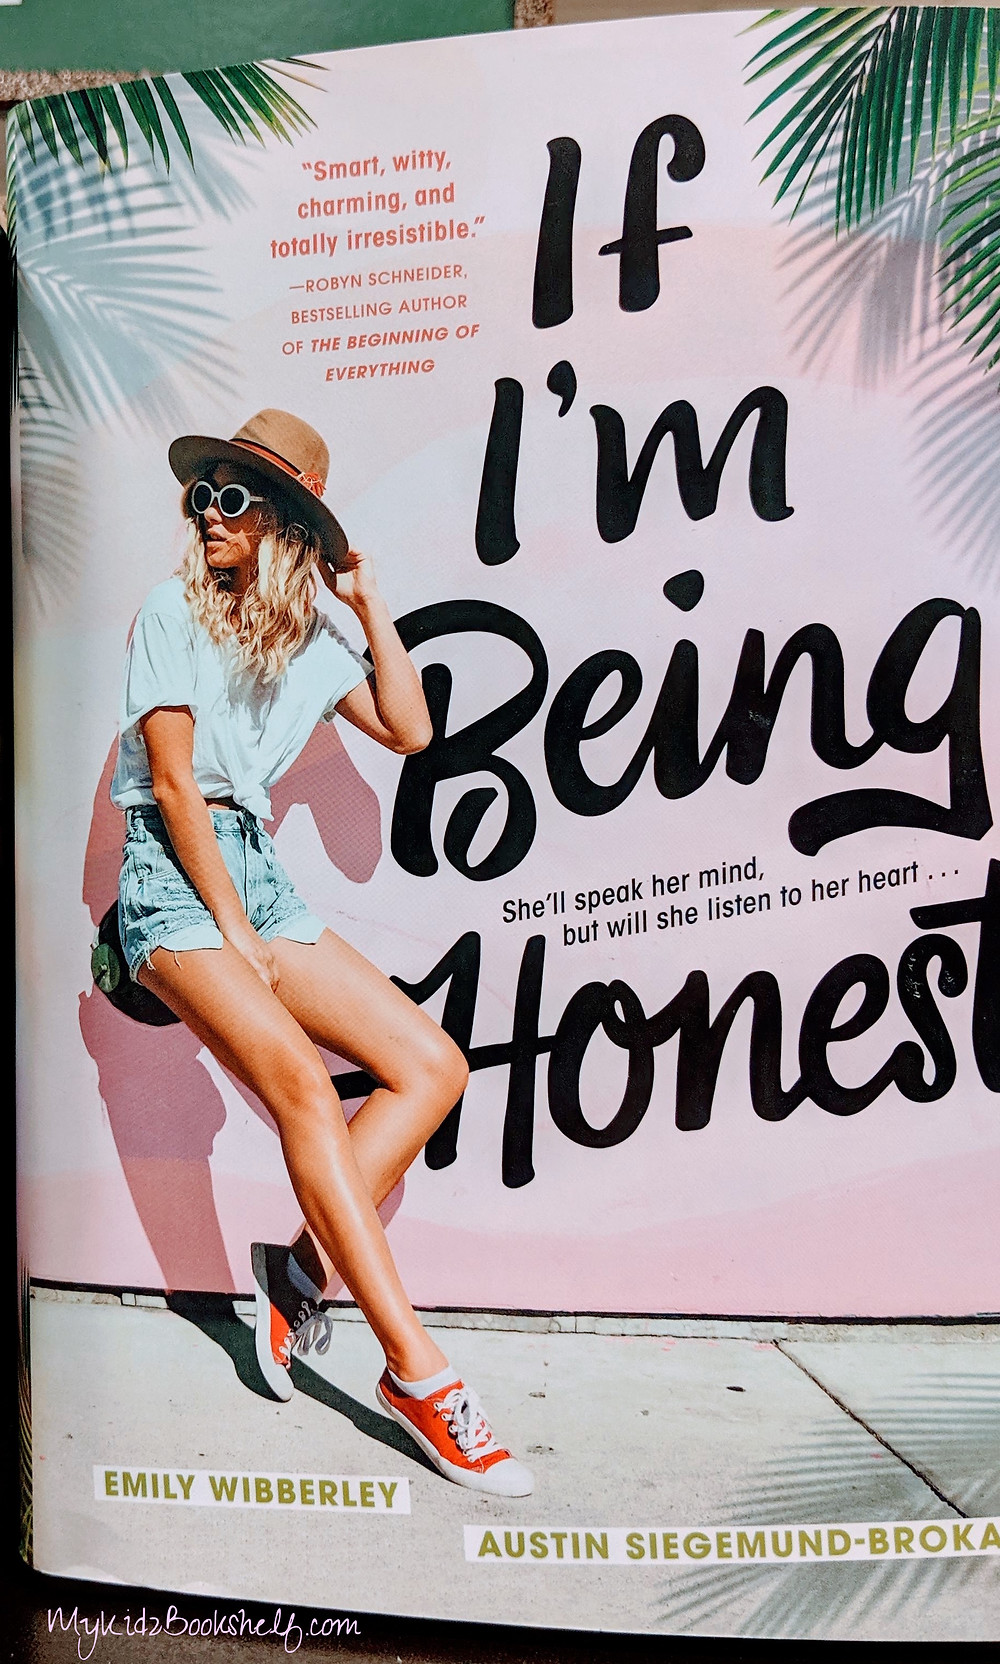 If I'm Being Honest book cover by Emily Wibberley